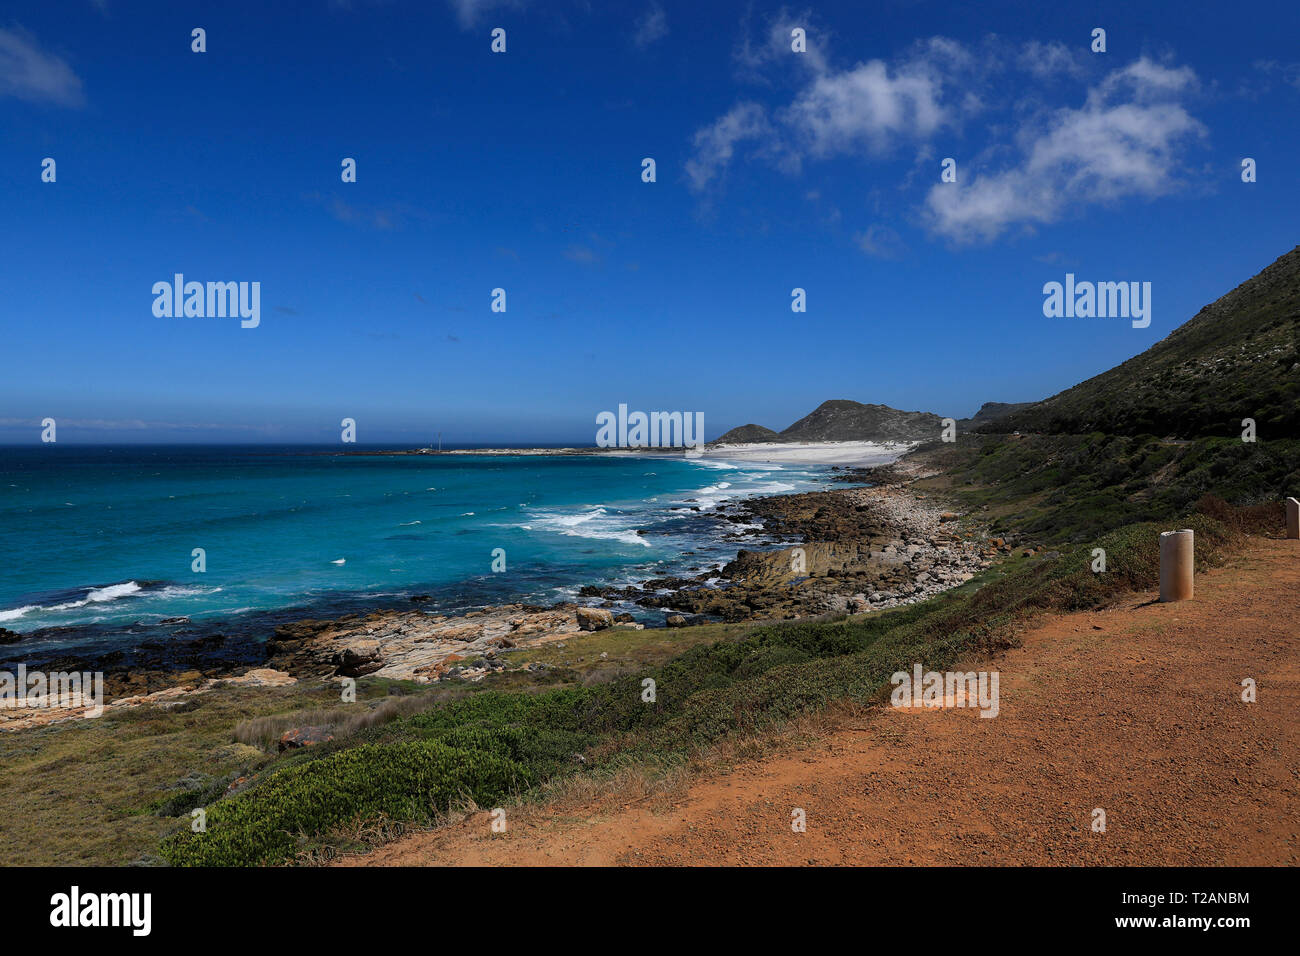 The coastal area near Misty Cliffs along the Atlantic Seaboard, Cape Town, South Africa. - Stock Image